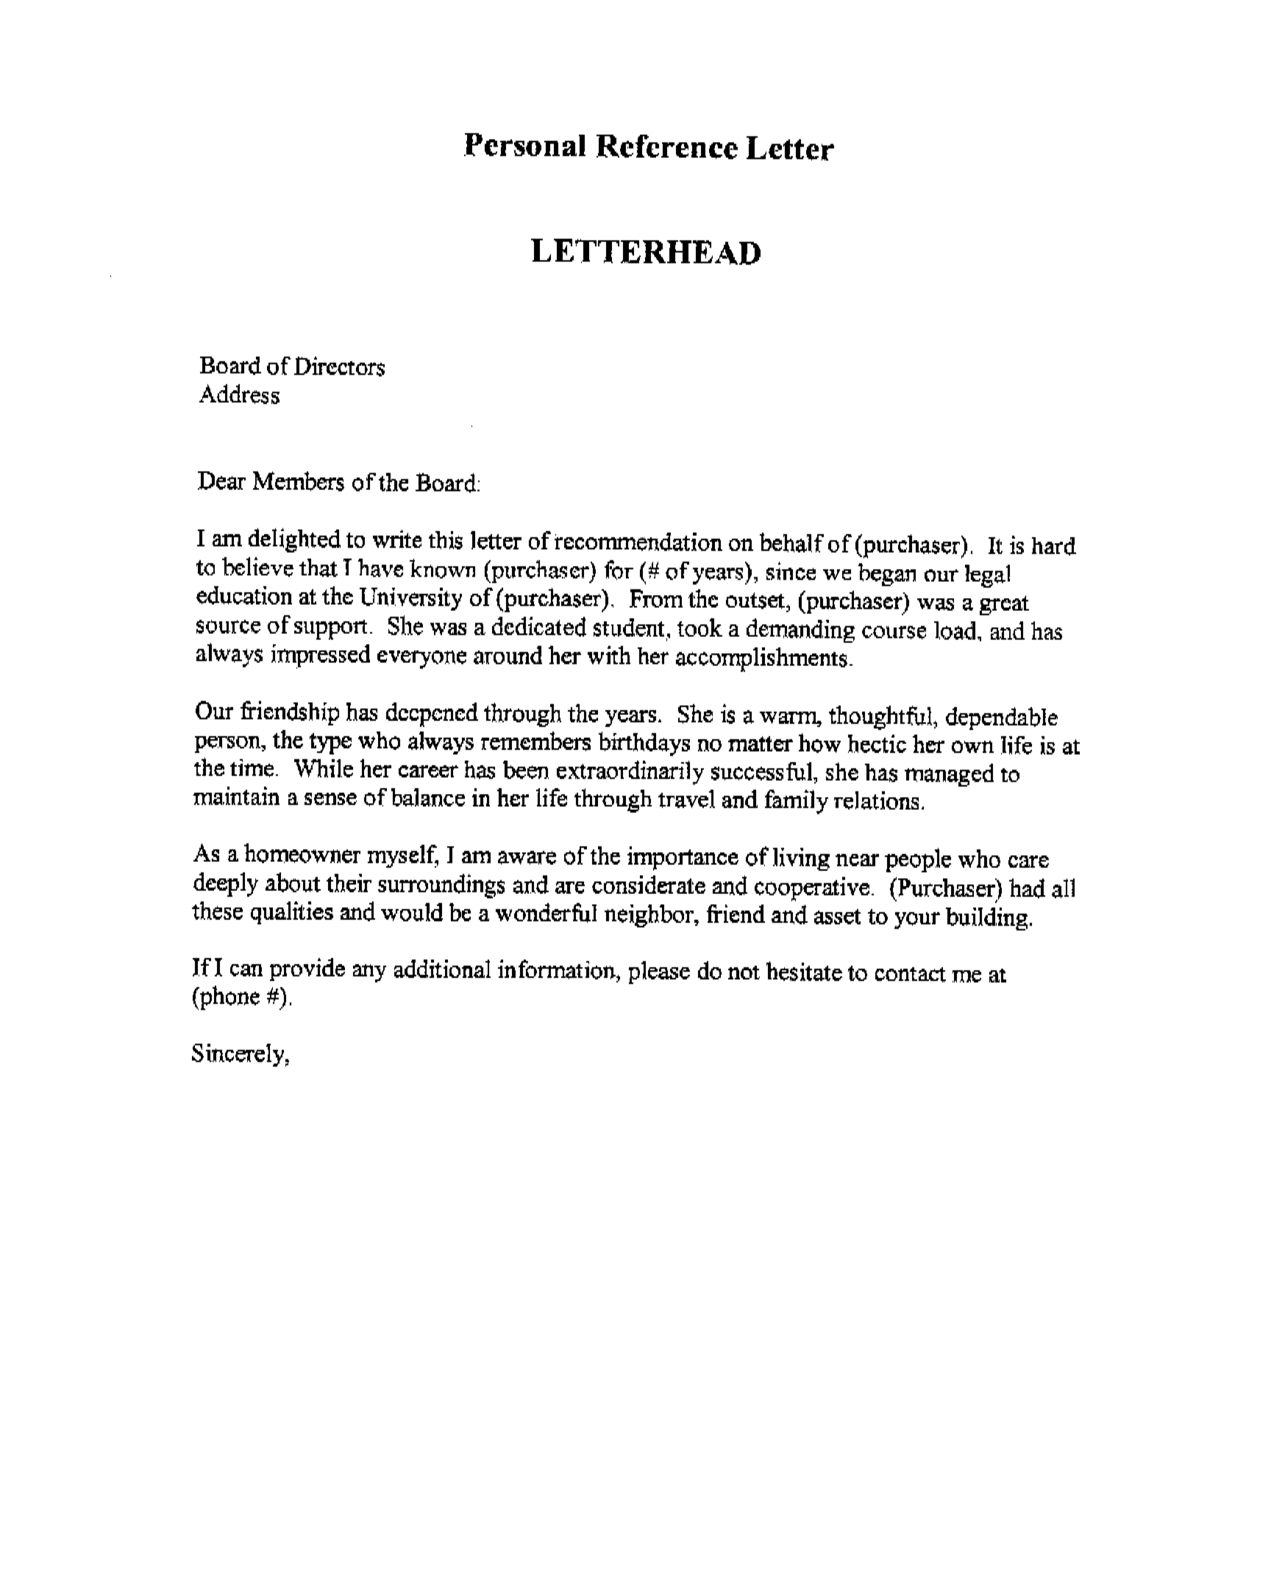 personal letter of recommendation reference letter1 writing a professional recommendation letter this is an example of a professional recommendation written for an employee